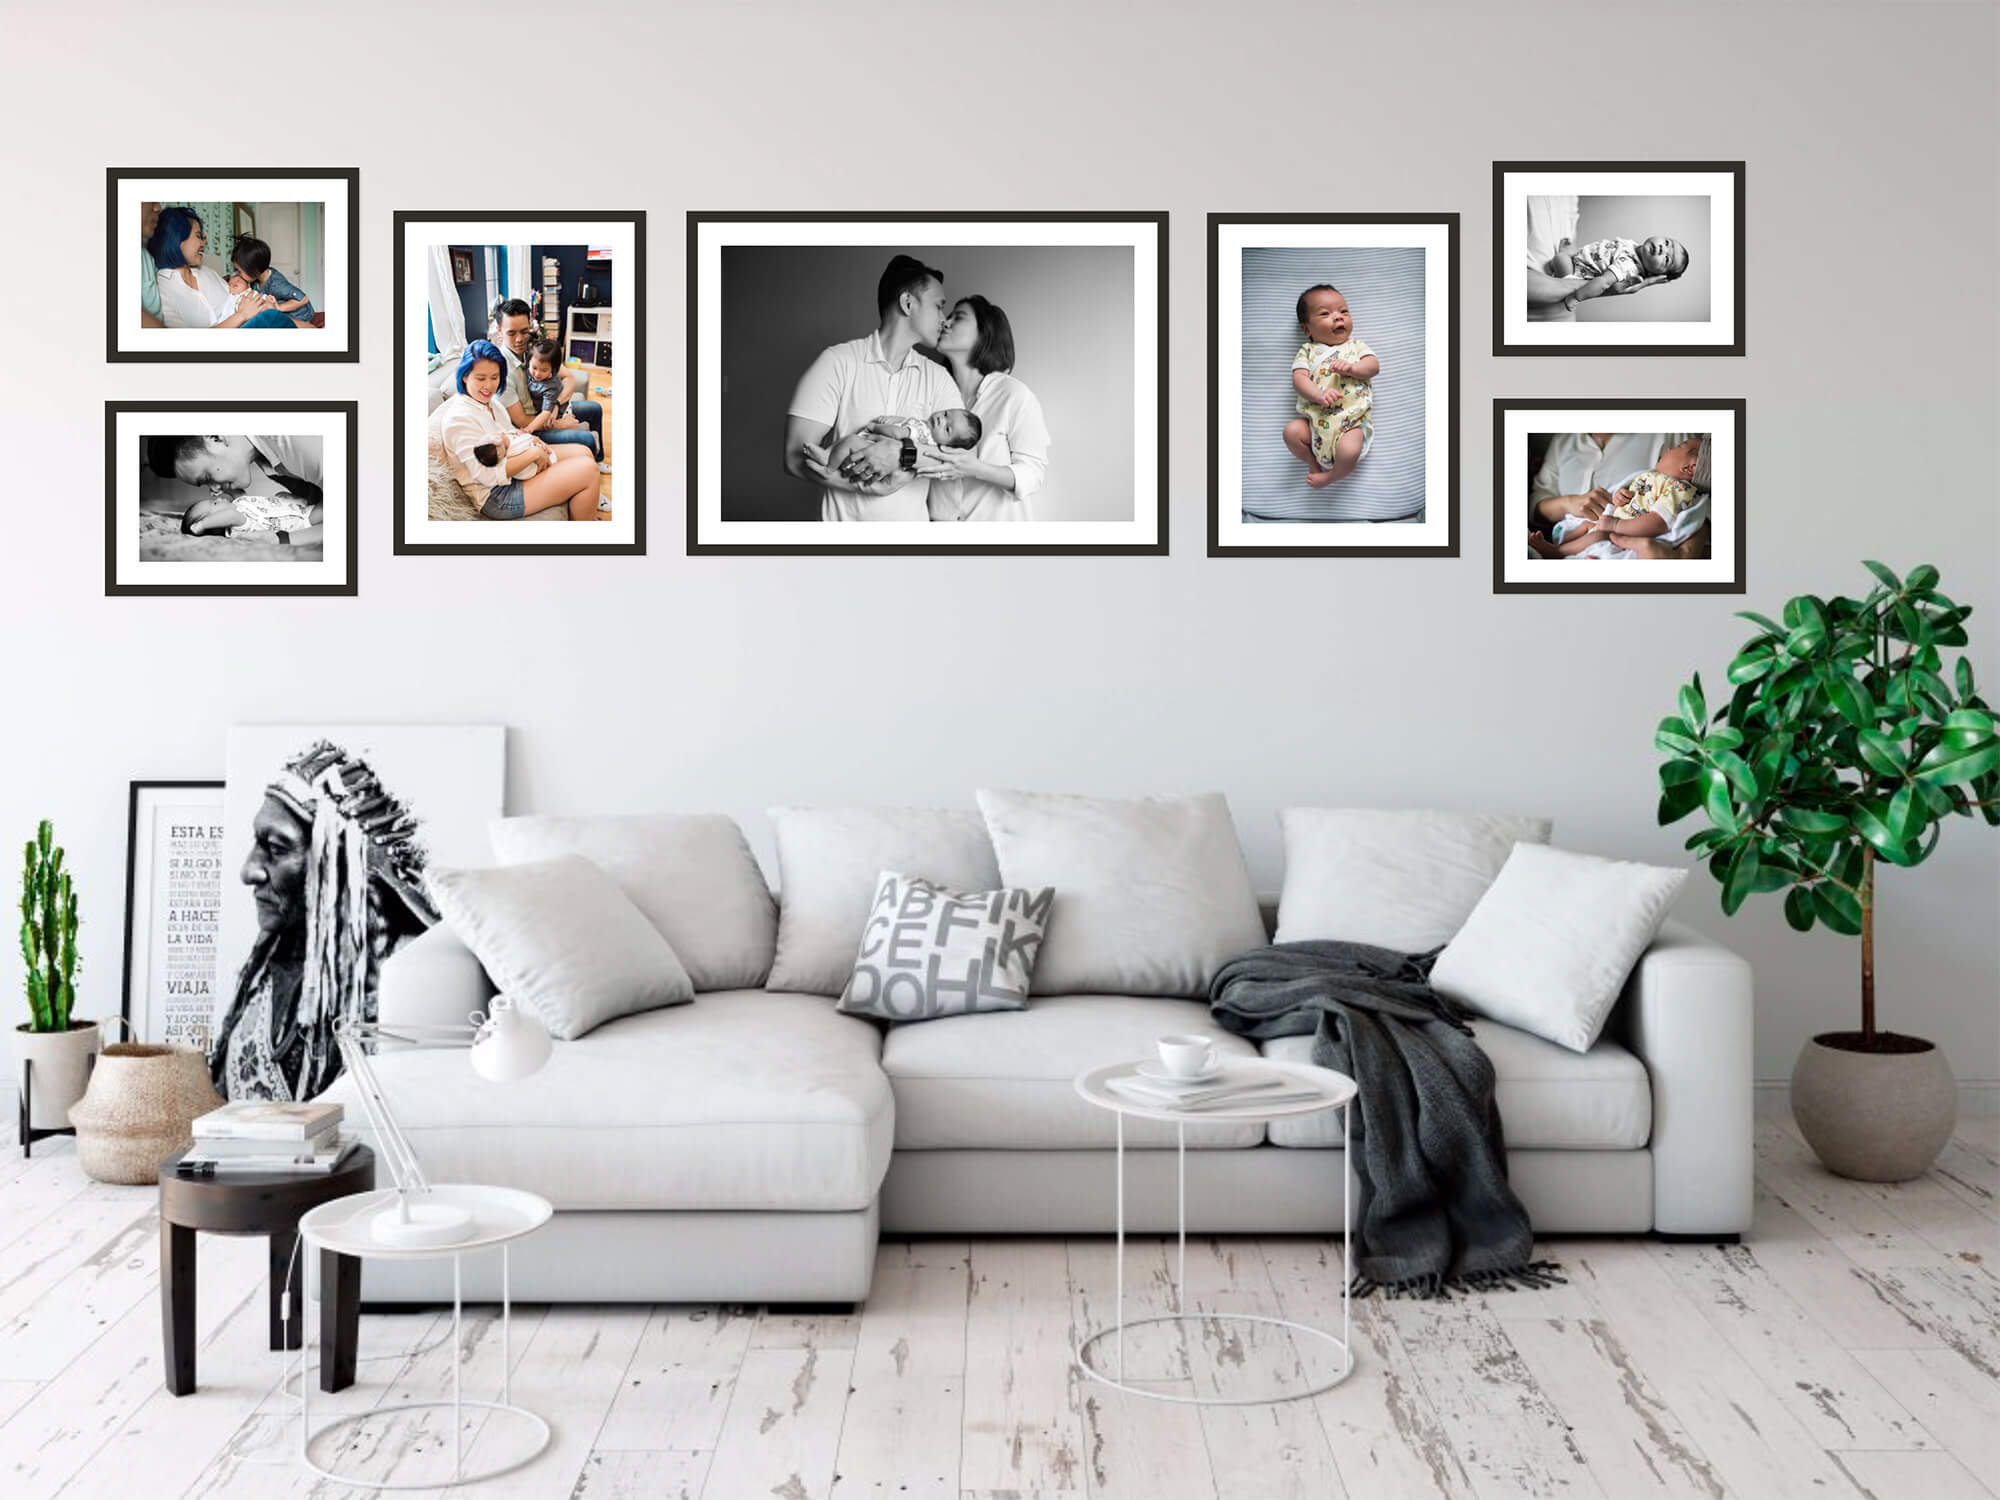 Lindsey-Victoria-Photography-wall-art-in-home-lifestyle-newborn-brooklyn-new-york-for-blog-tiny.jpg